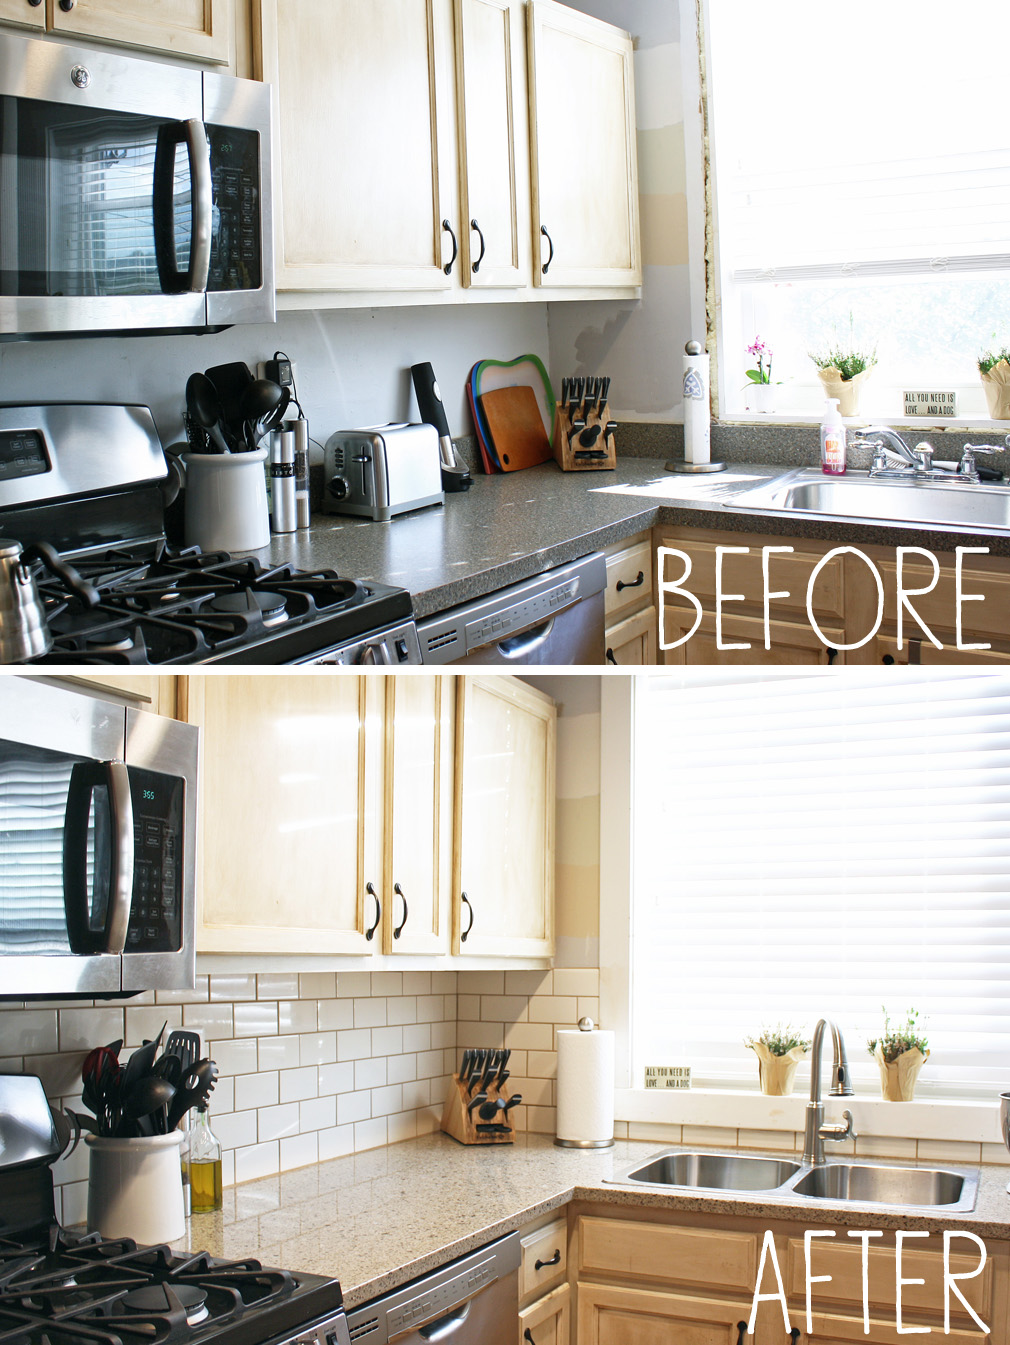 Bathroom Counter And Backsplash : A kitchen backsplash before and after reveal century